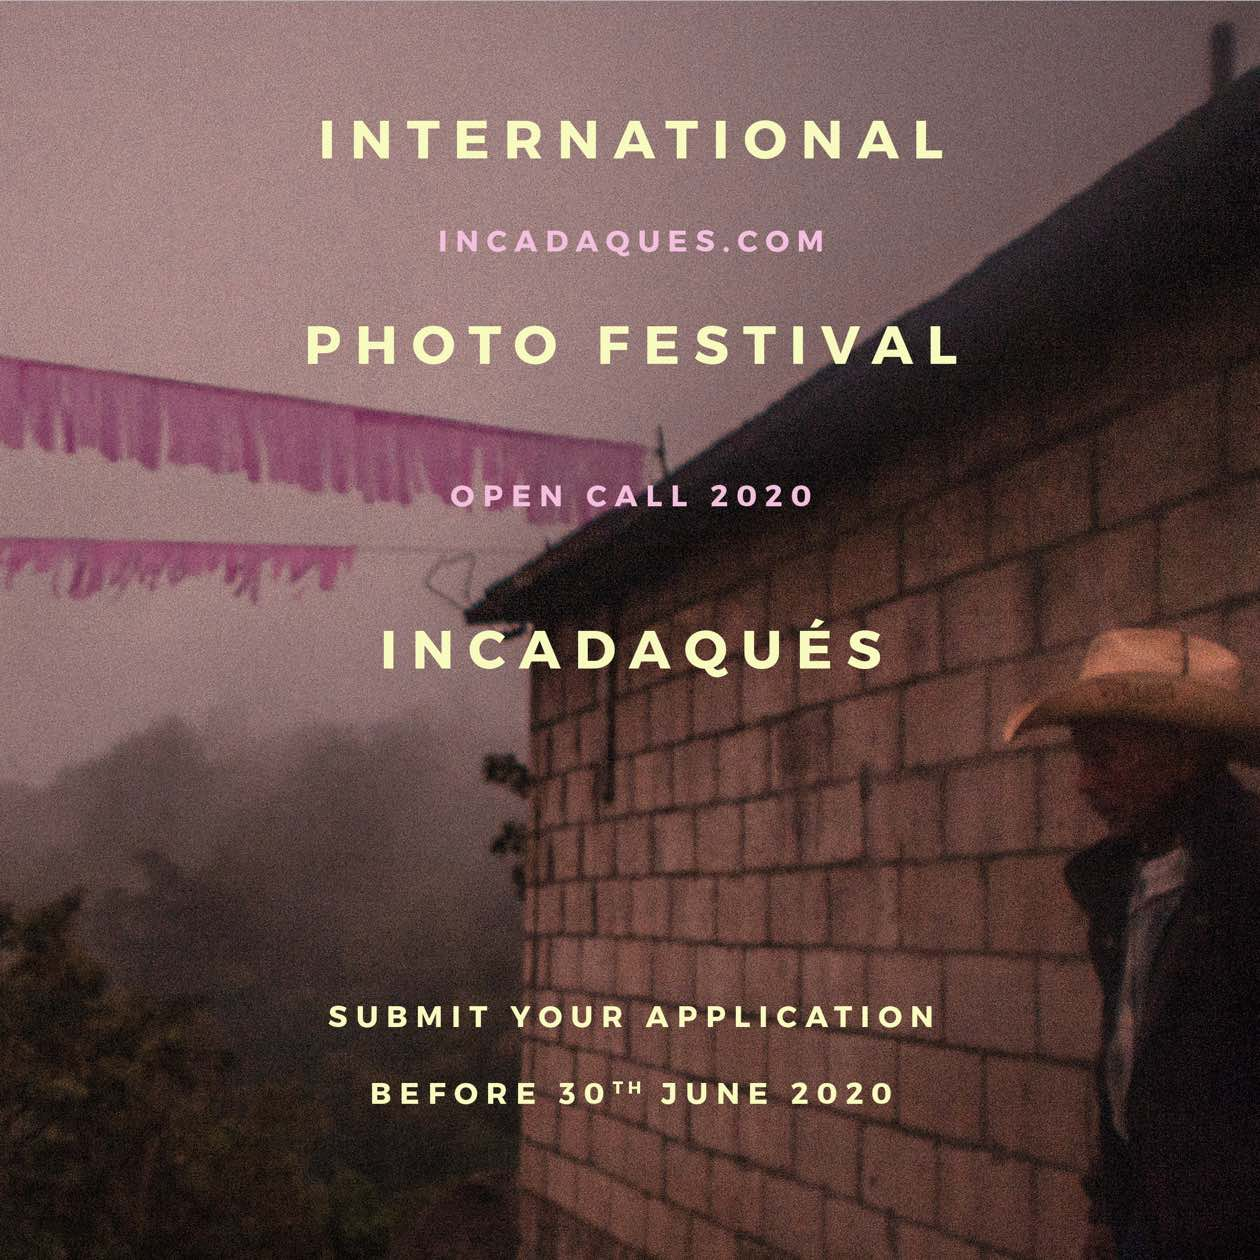 OPEN CALL INCADAQUES PHOTO FESTIVAL 2020